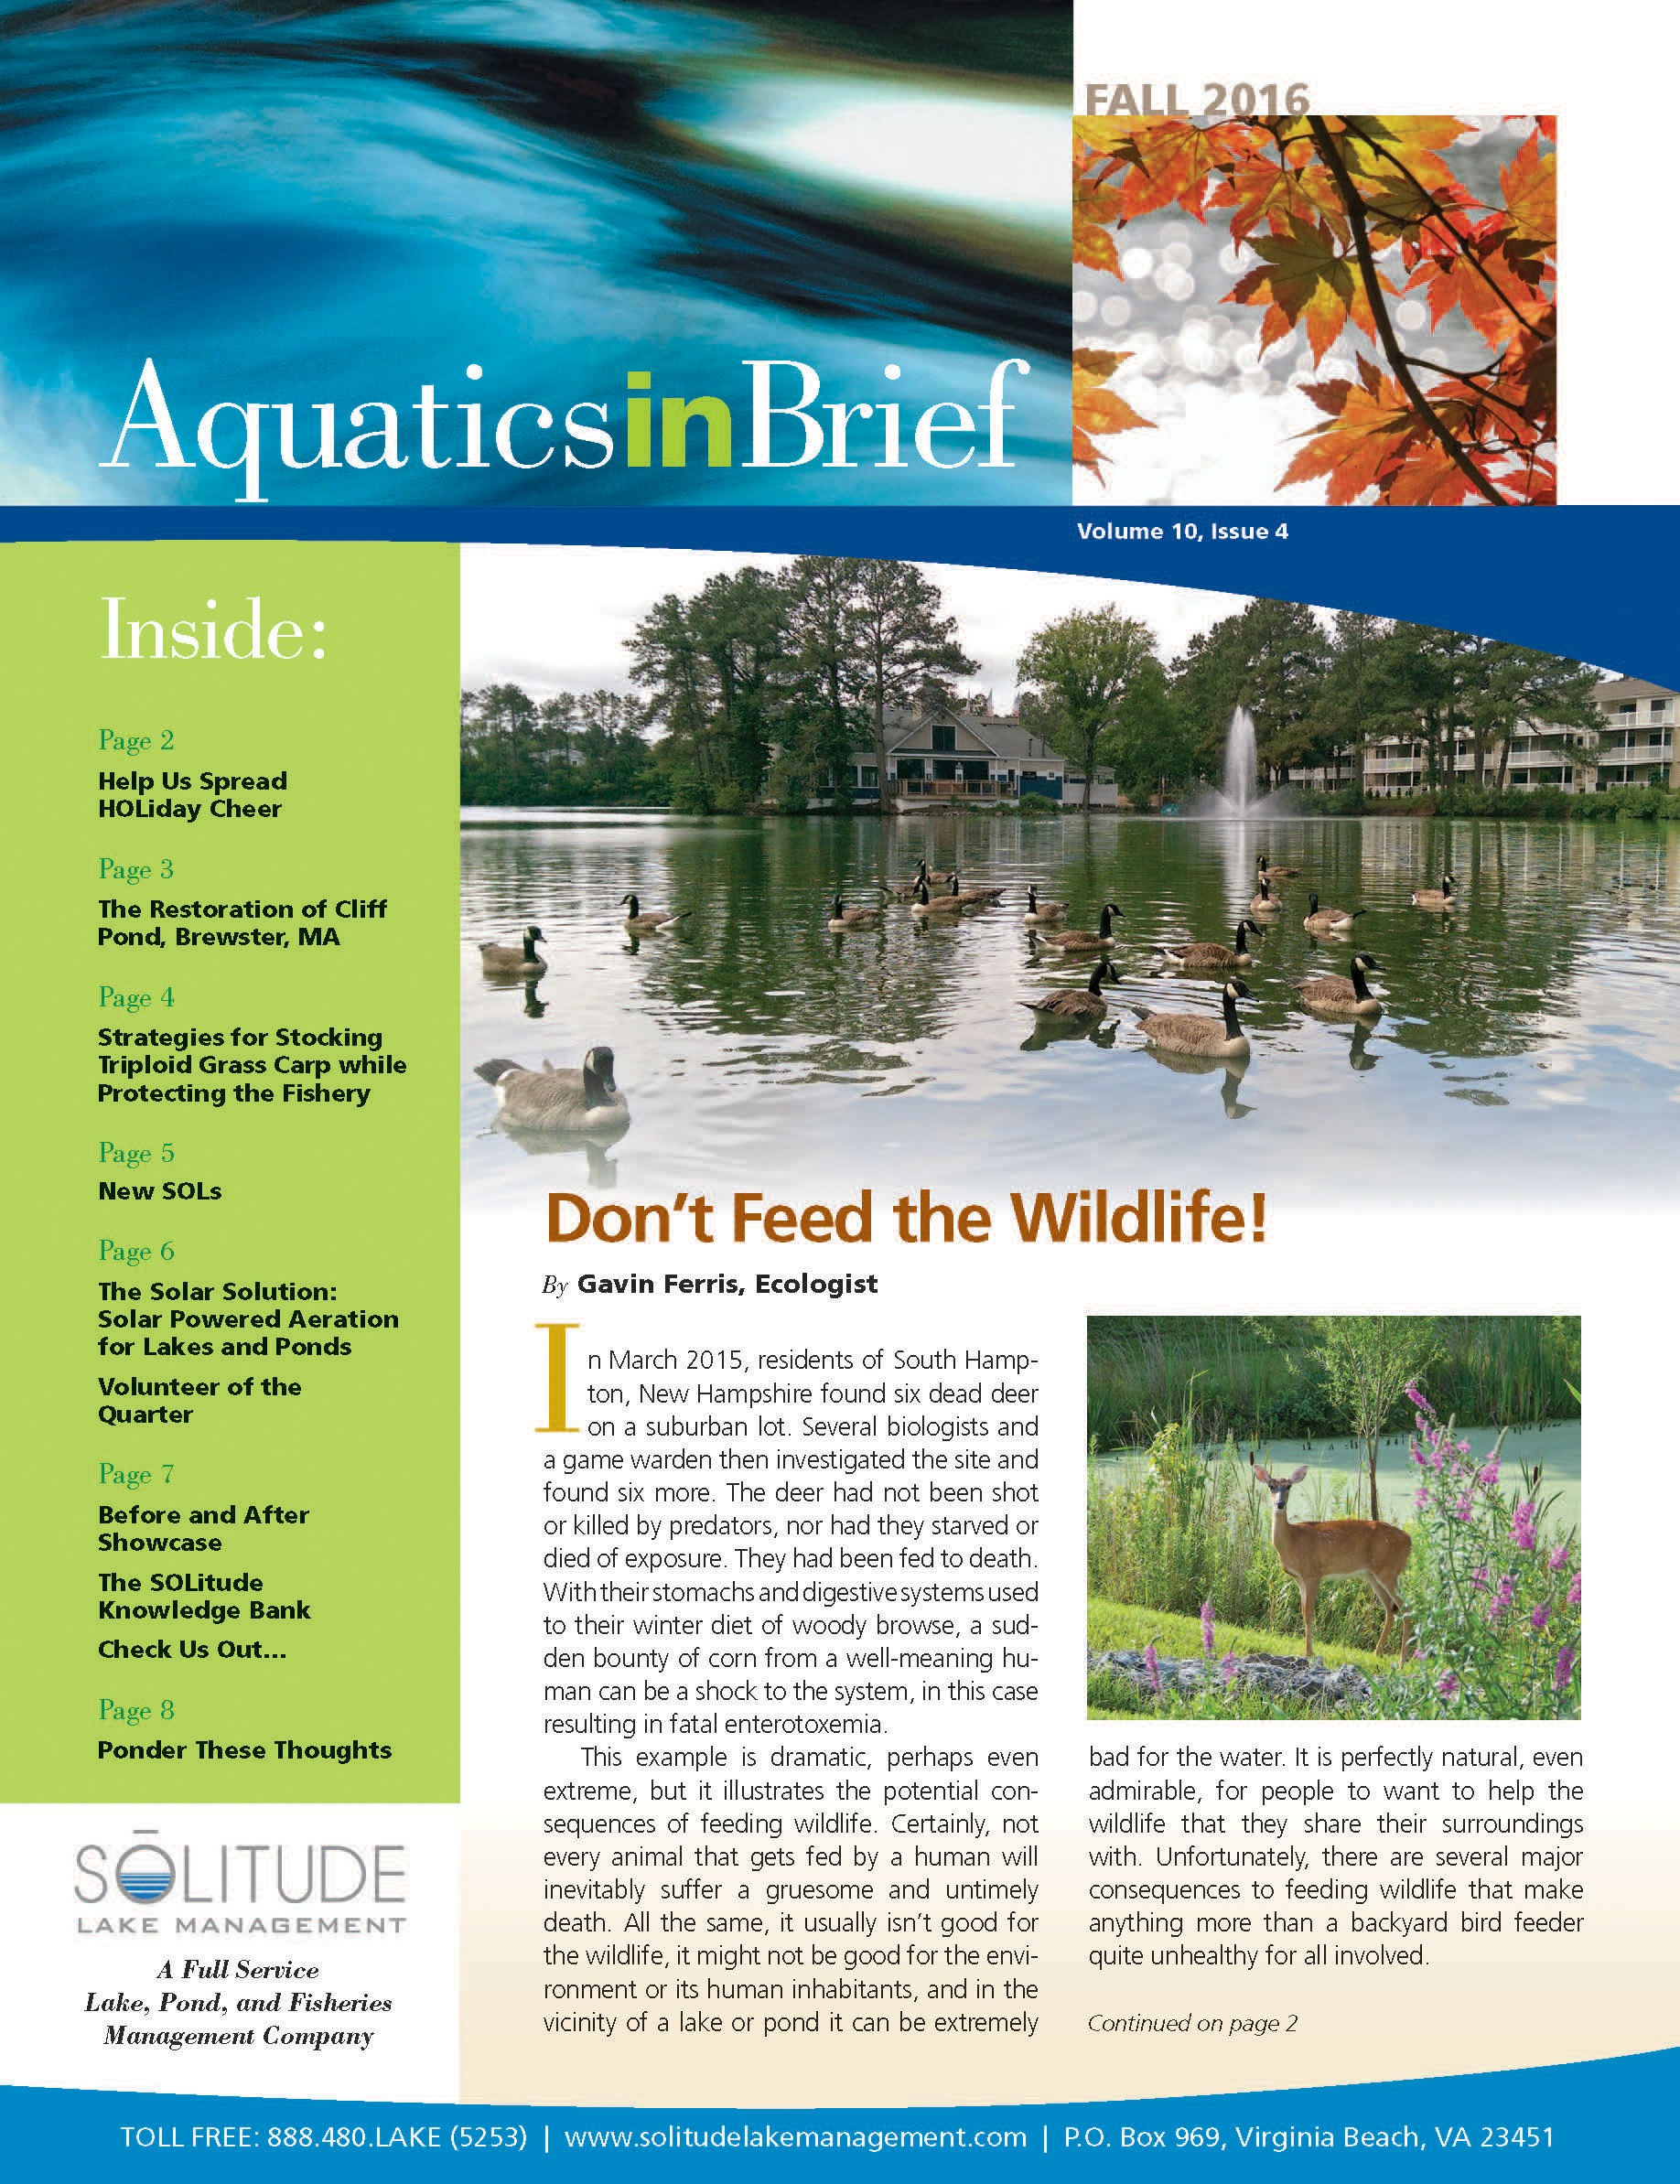 AquaticsInBrief_newsletter_10.2016_fall_cover